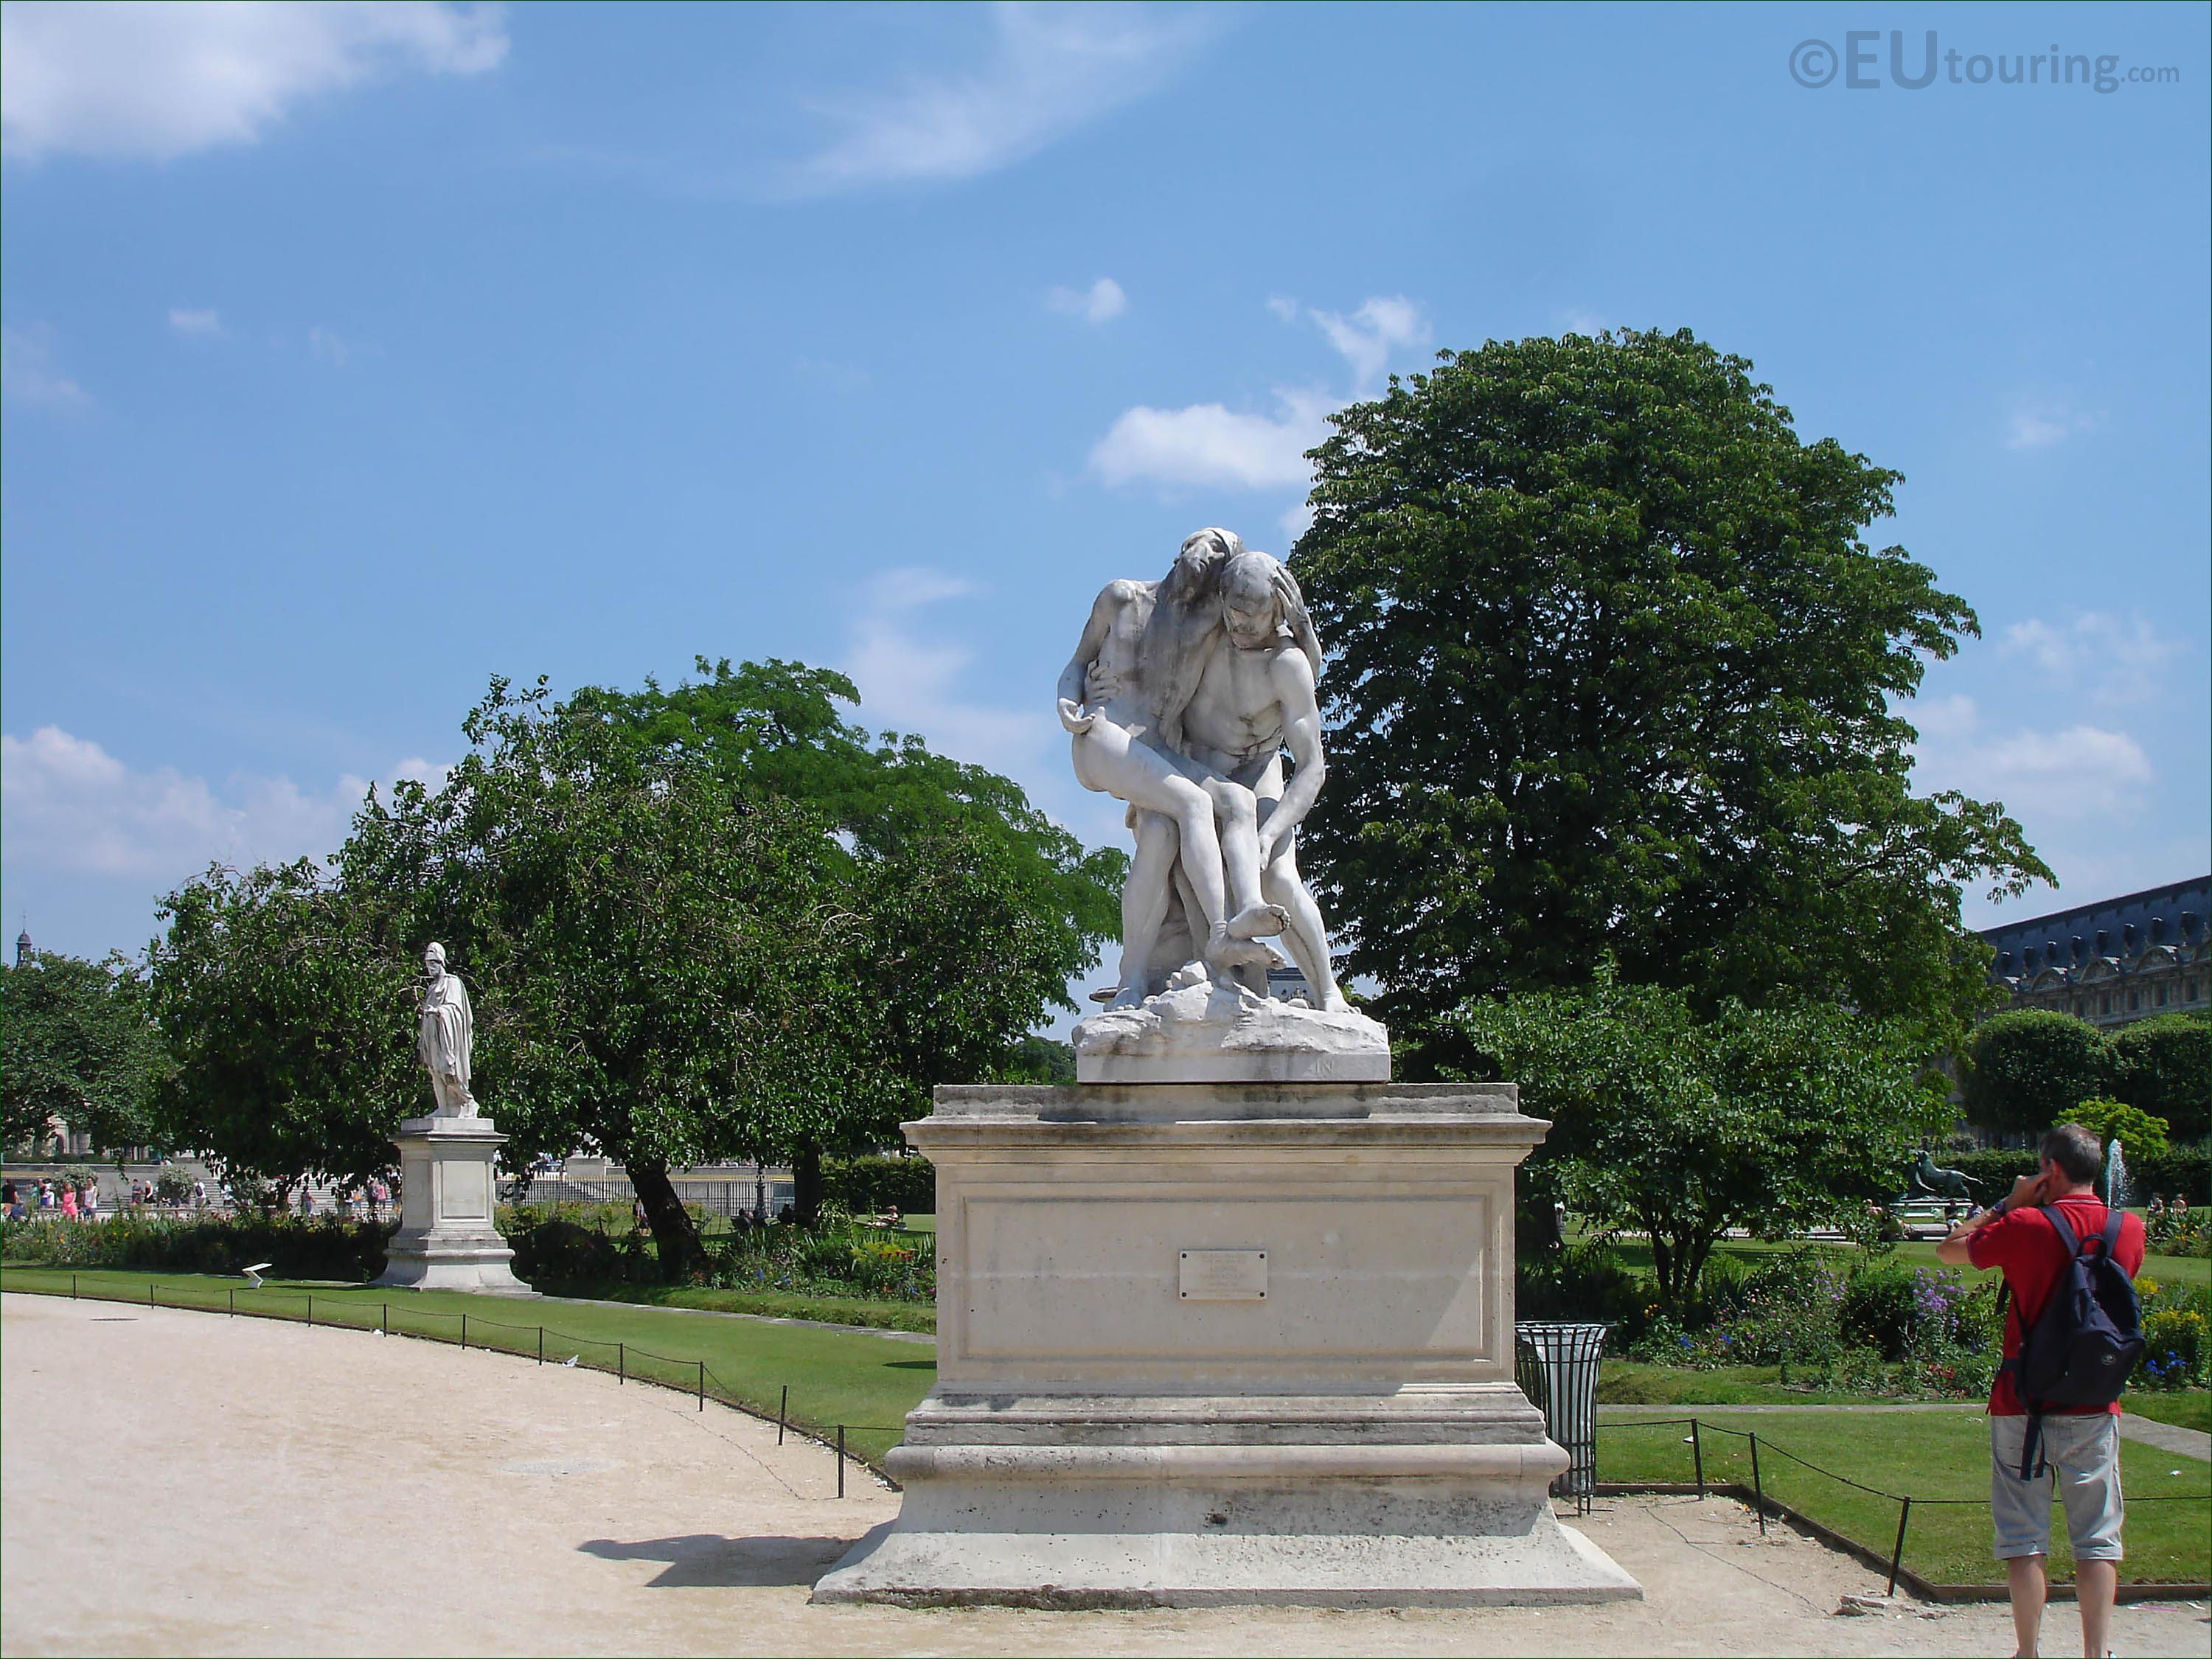 Map Of Attractions And Photos Inside Tuileries Gardens In Paris